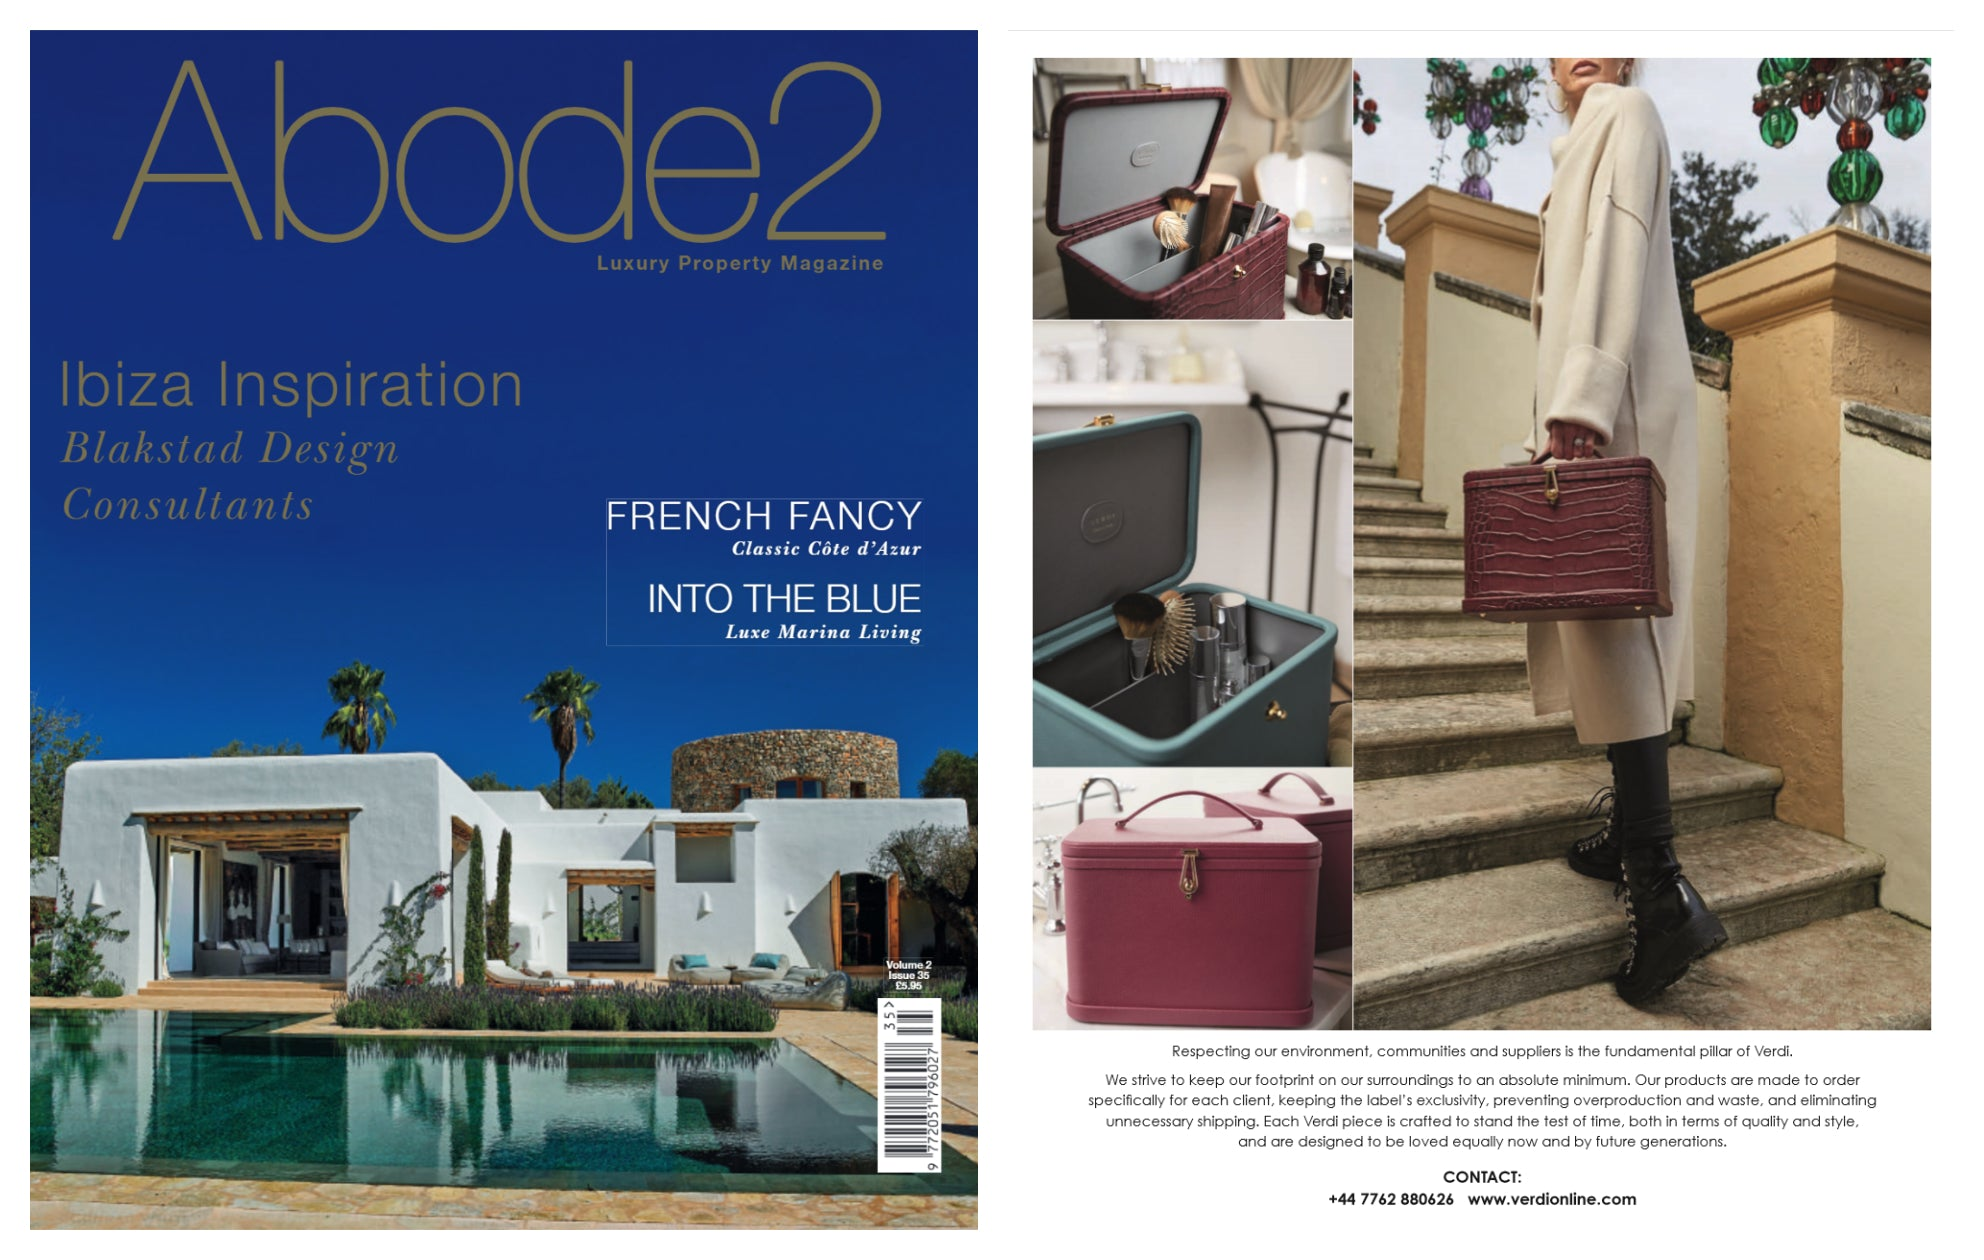 Atelier Verdi Pink Vanity Case, Verdi Blue Vanity Case and Verdi Wine Crocodile Vanity Case in Abode2 Luxury Gift Guide